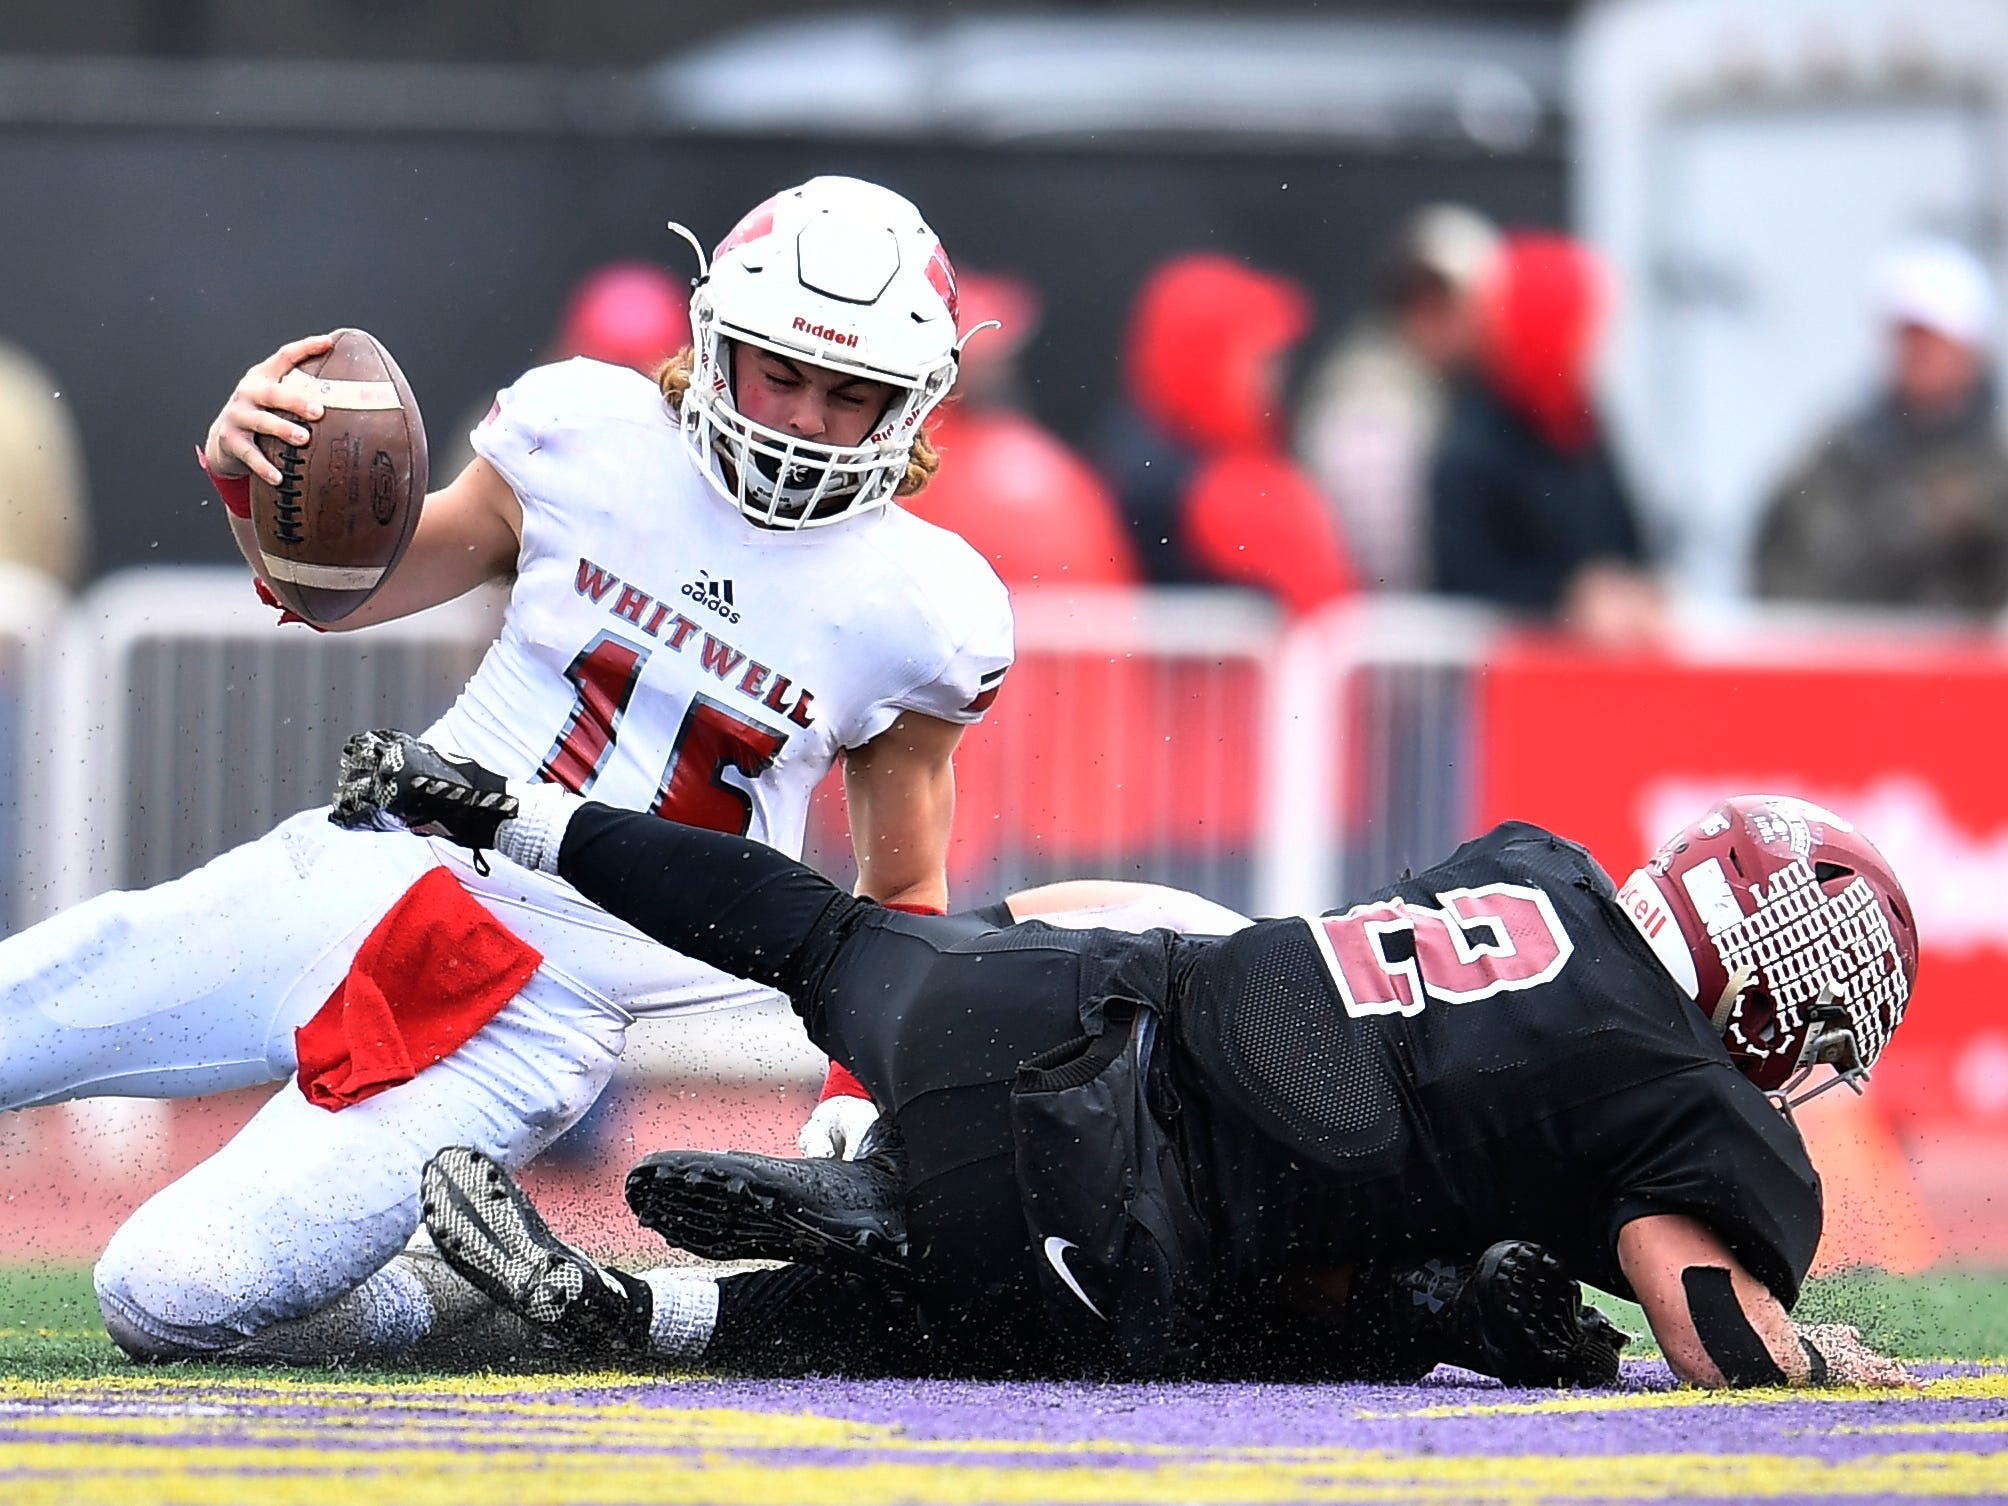 Whitwell quarterback Allen Ashworth (15) is sacked by Cornersville's Devin Baus (65) and Trenton Warren (2) in the fourth quarter at the Class I-A BlueCross Bowl state championship at Tennessee Tech's Tucker Stadium in Cookeville, Tenn., on Saturday, Dec. 1, 2018.